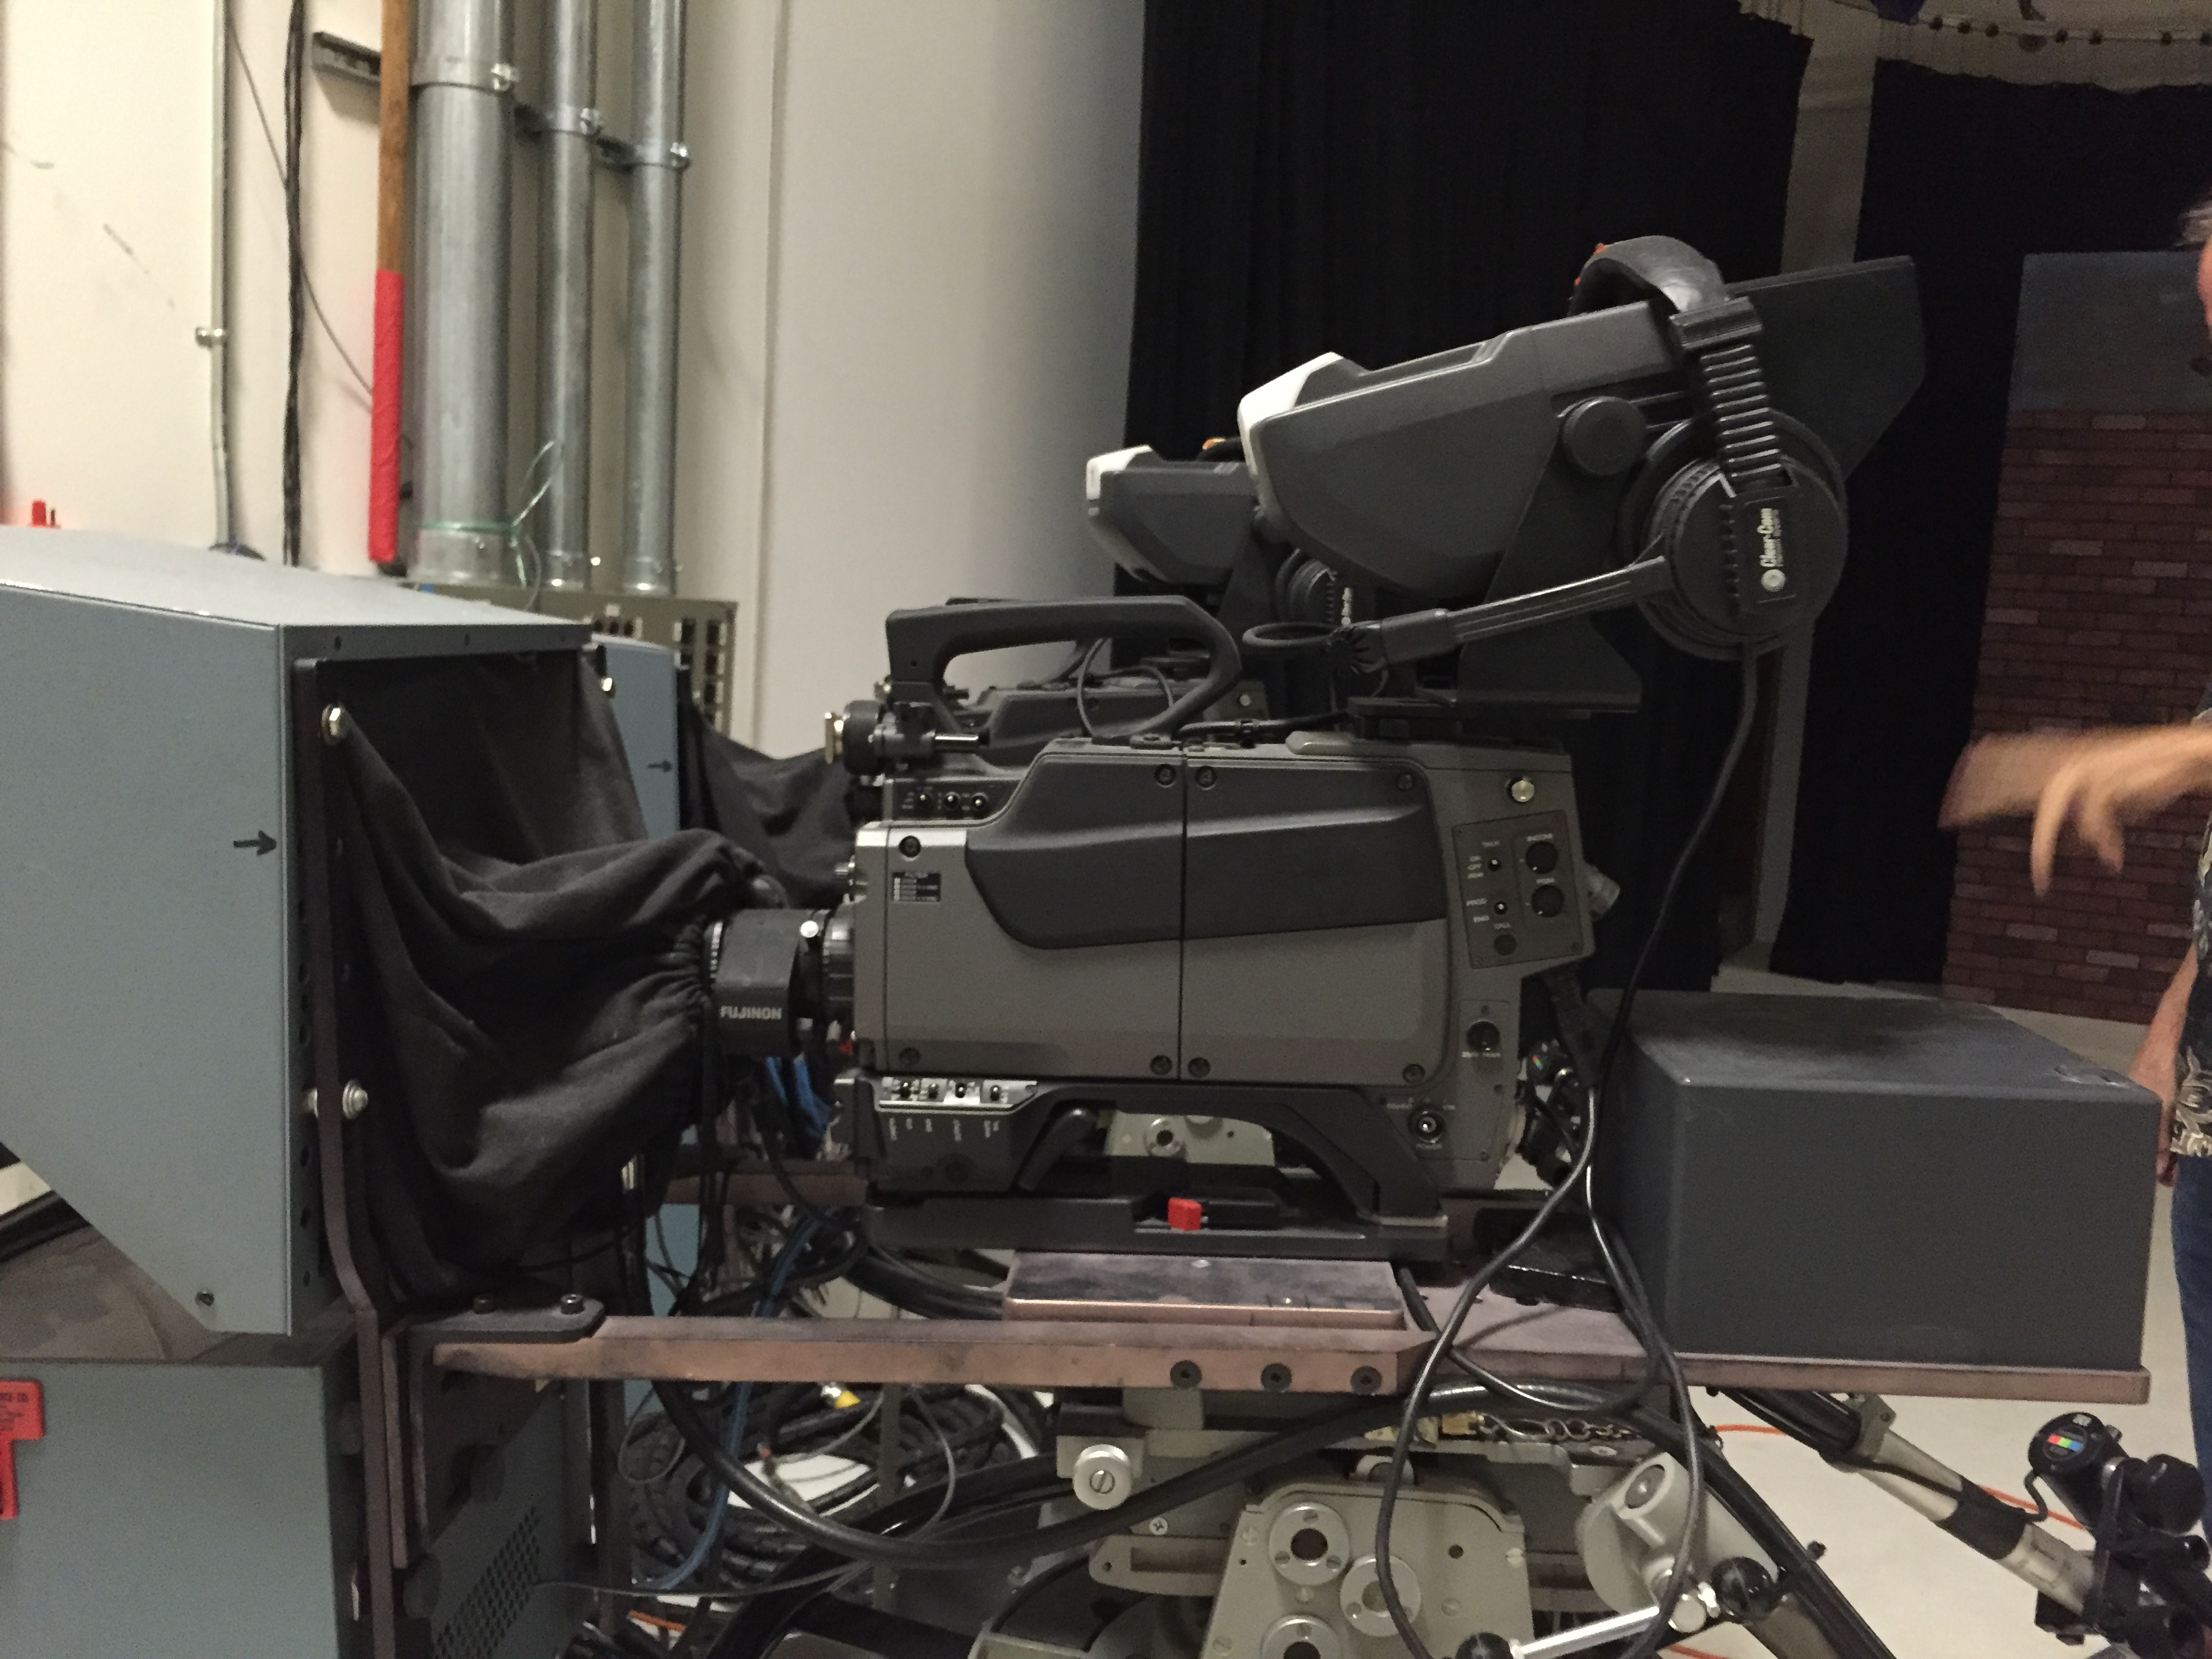 Sony BVP-570-Closer: Prompter bracketry and counterbalance weights